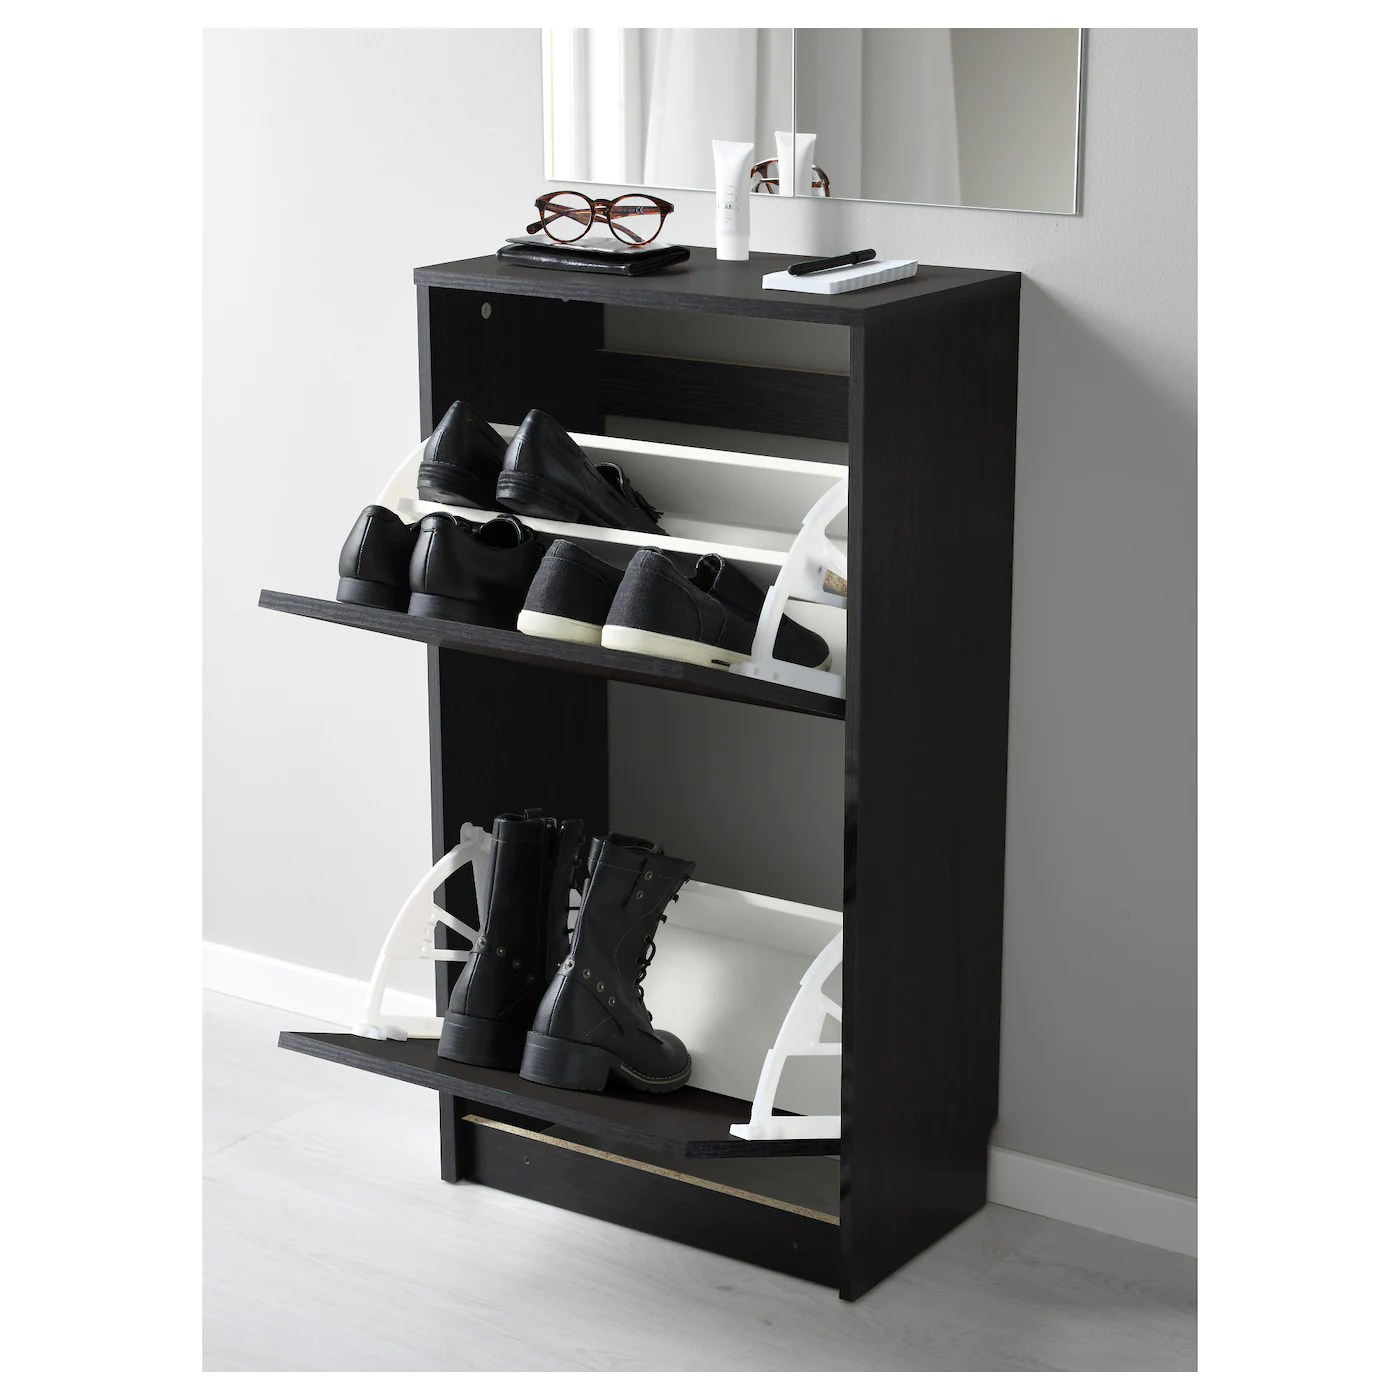 bissa shoe cabinet with 2 compartments black brown 19 1 4x11x36 5 8